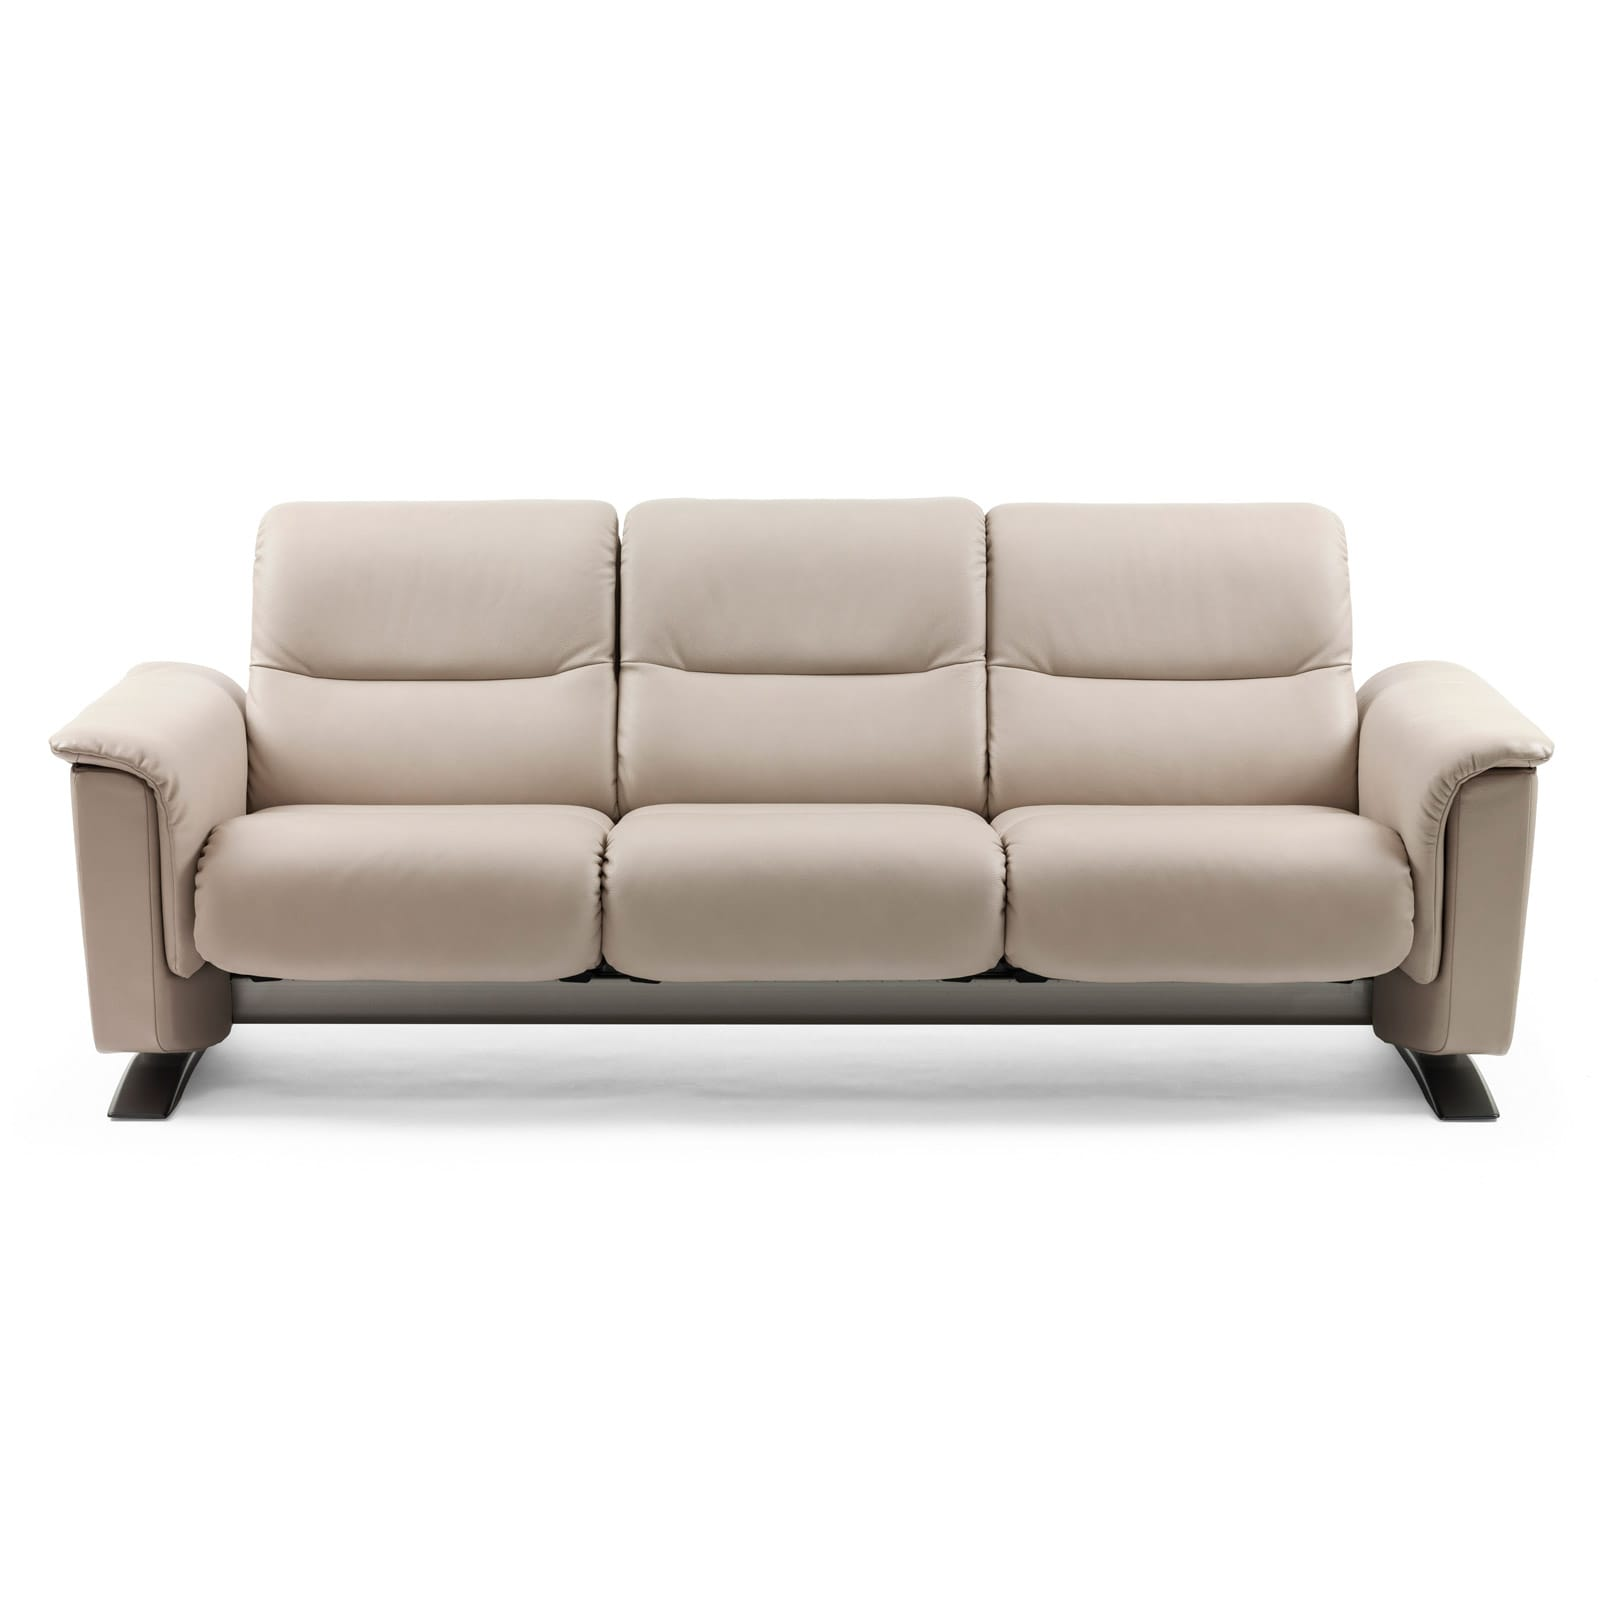 stressless sofa 3 sitzer panorama beige stressless. Black Bedroom Furniture Sets. Home Design Ideas